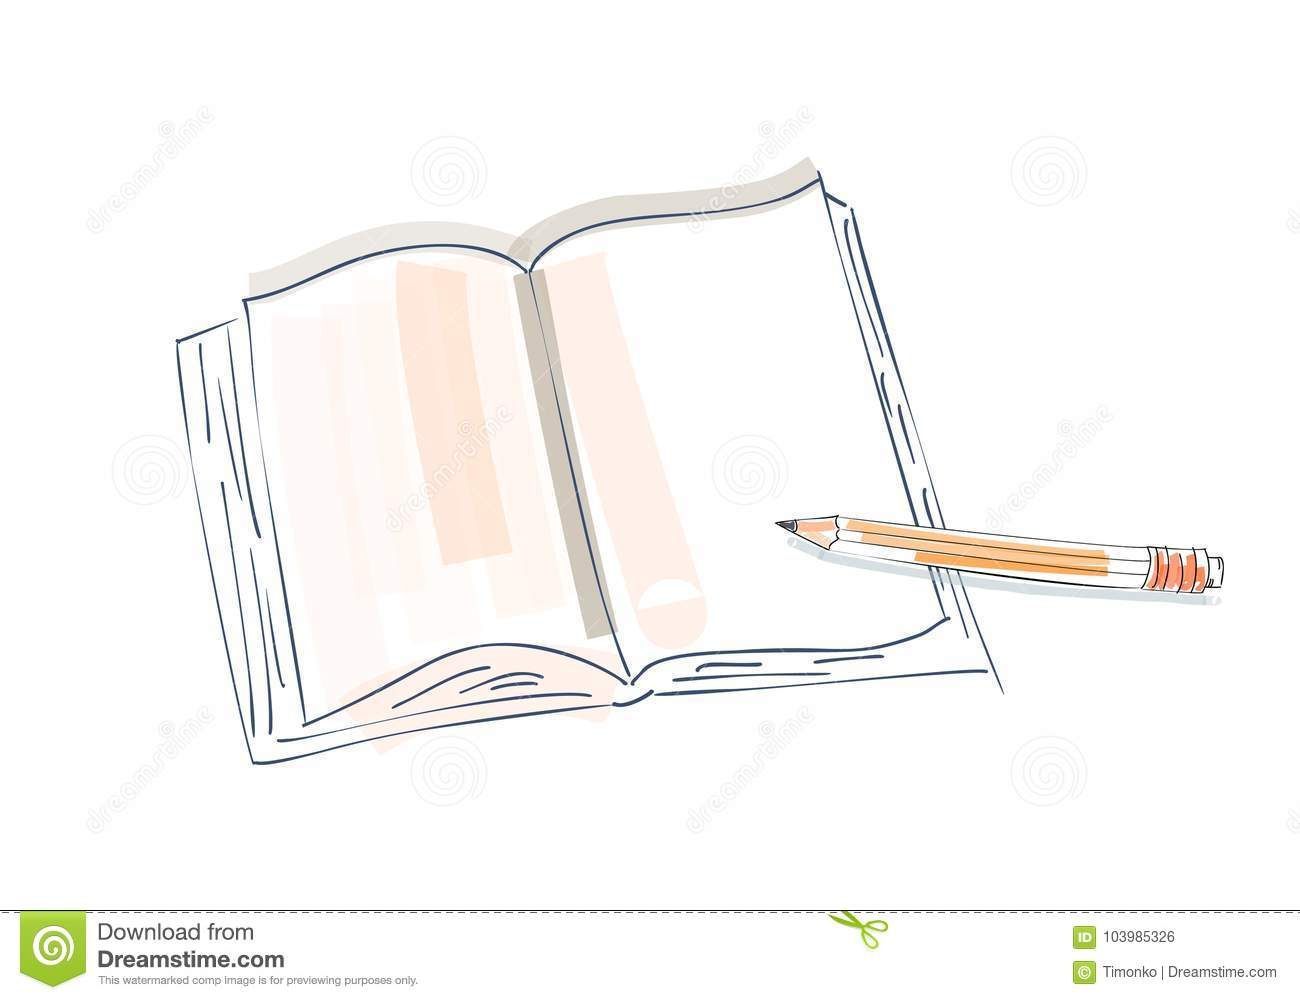 Notebook And Pen Sketch Stock Vector Art More Images Of: Notebook Doodle, Primitive Drawing Hand. Pen And Notebook